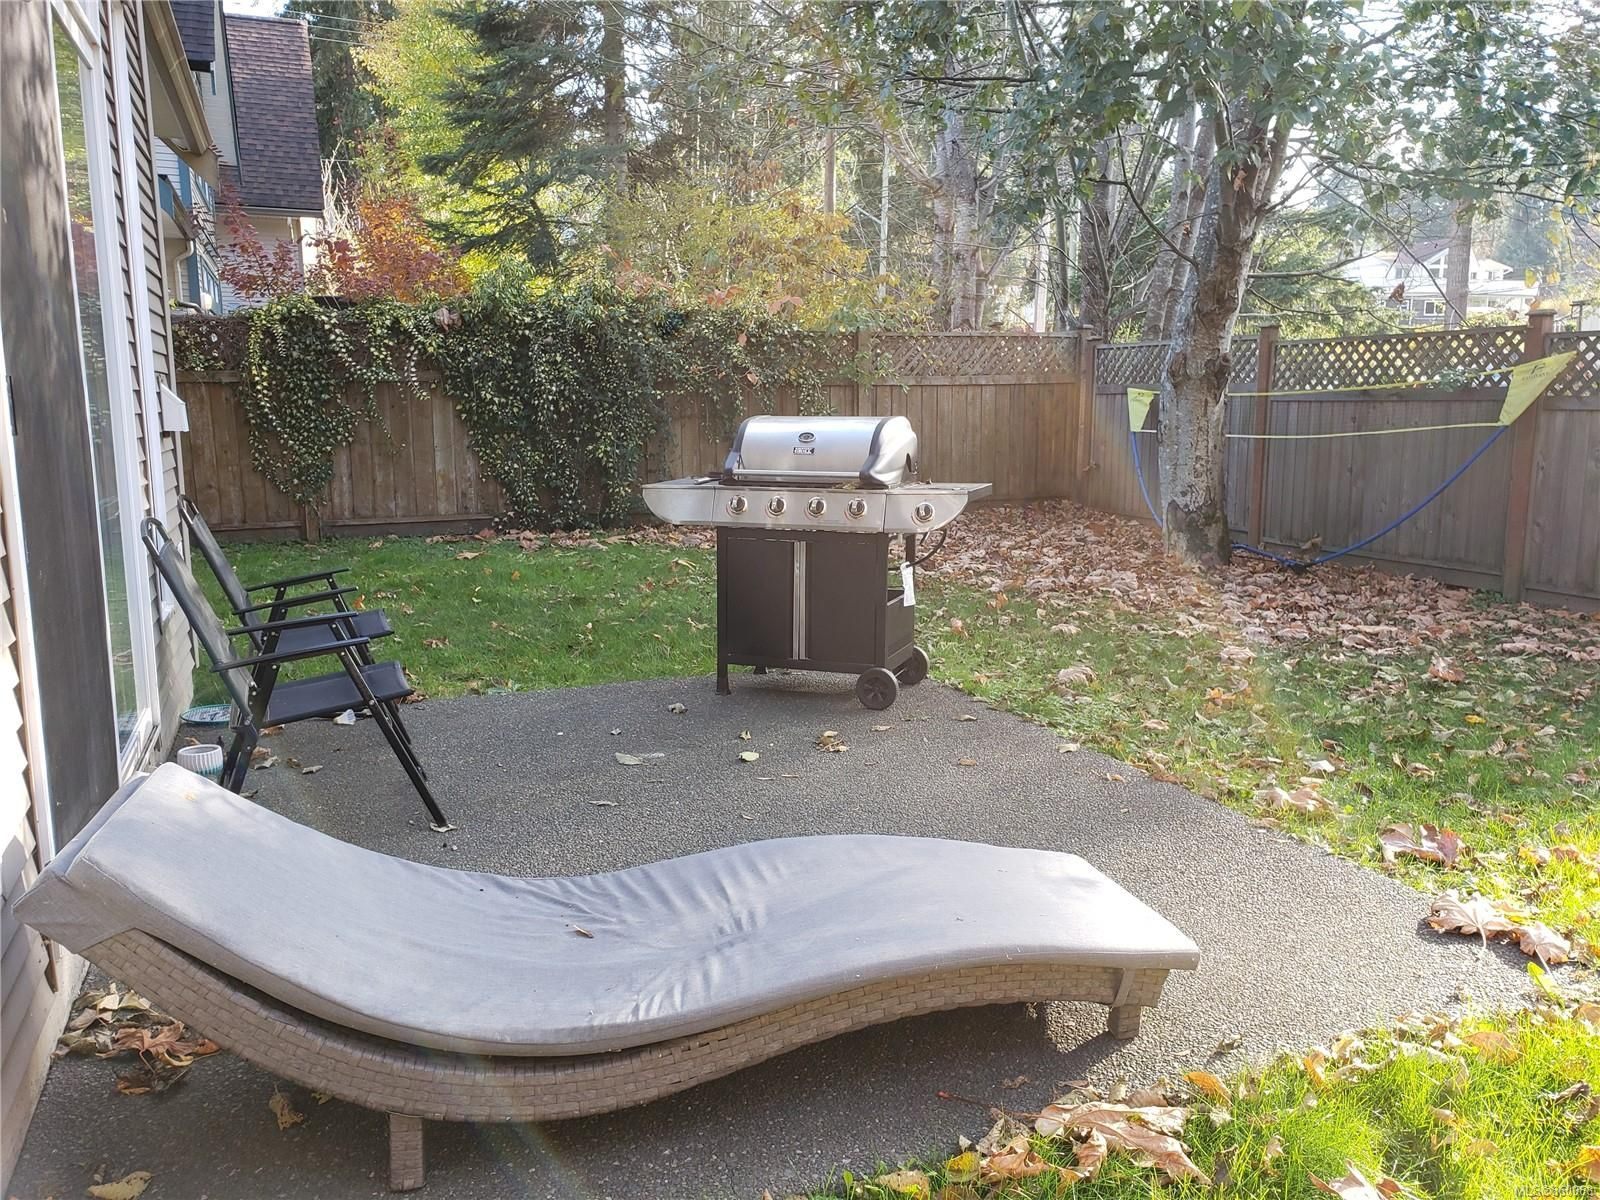 Photo 26: Photos: 105 2787 1st St in Courtenay: CV Courtenay City House for sale (Comox Valley)  : MLS®# 860068